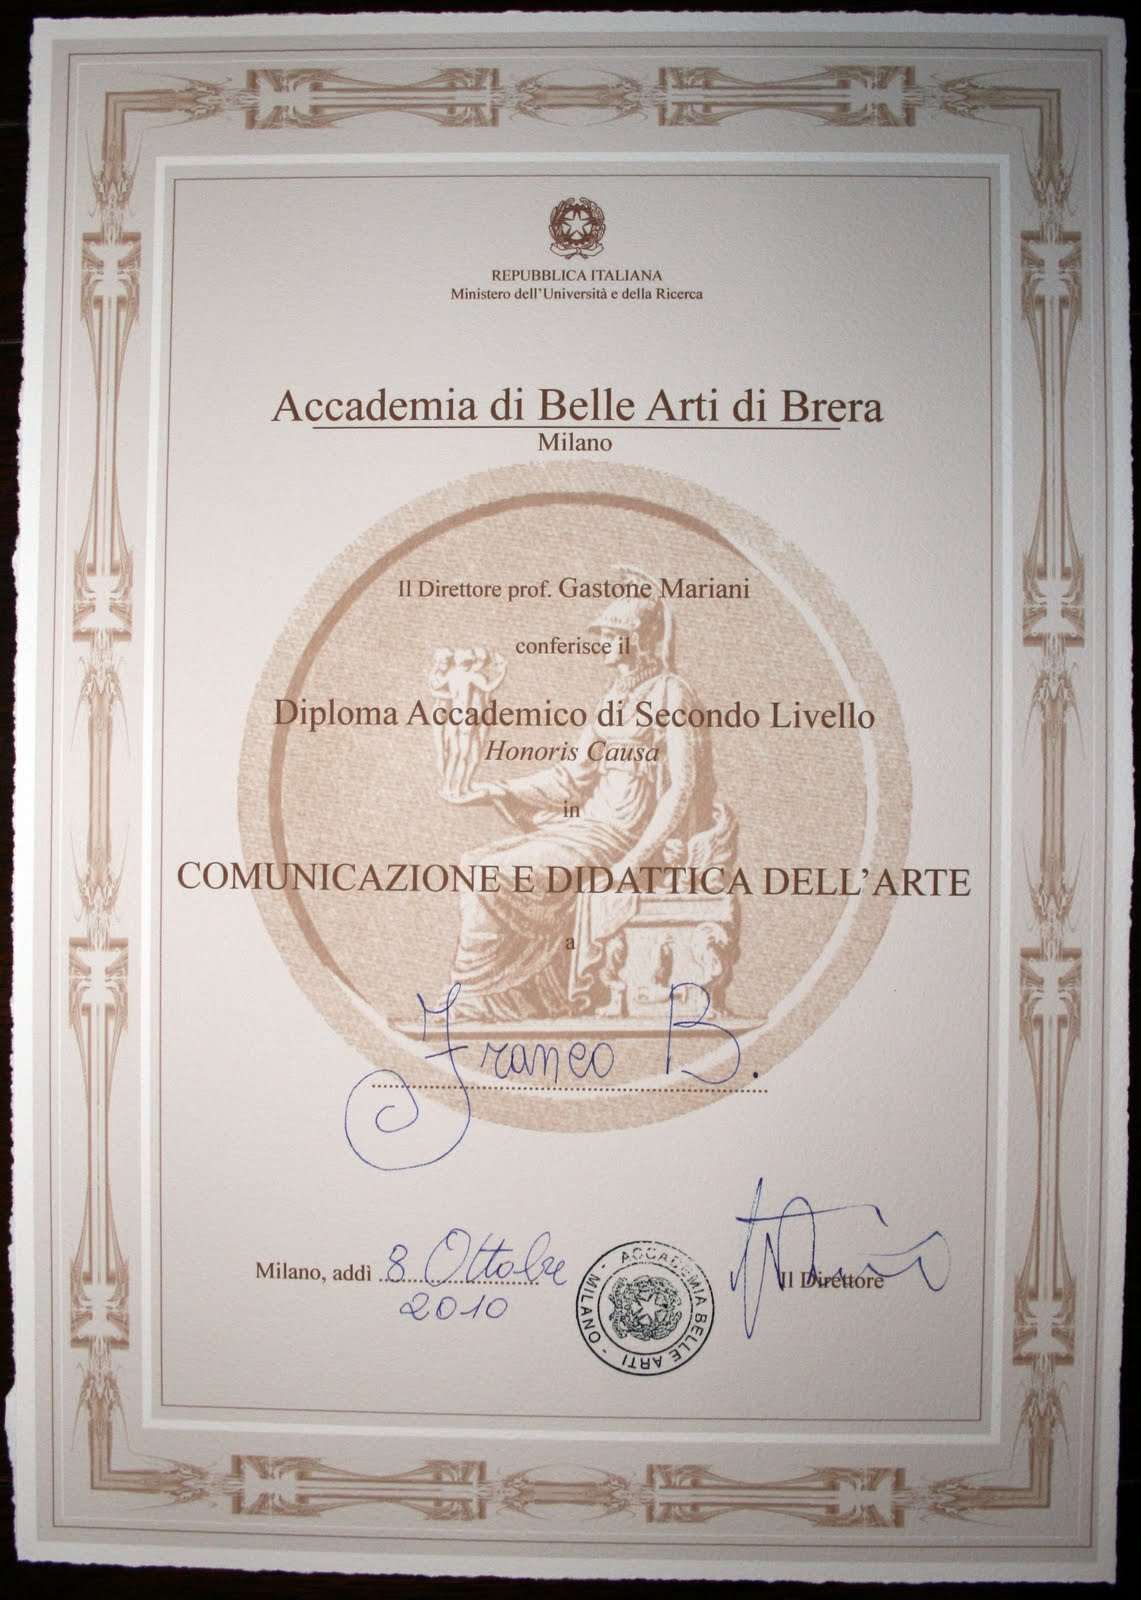 Franko b news honorary degree for Laurea in belle arti